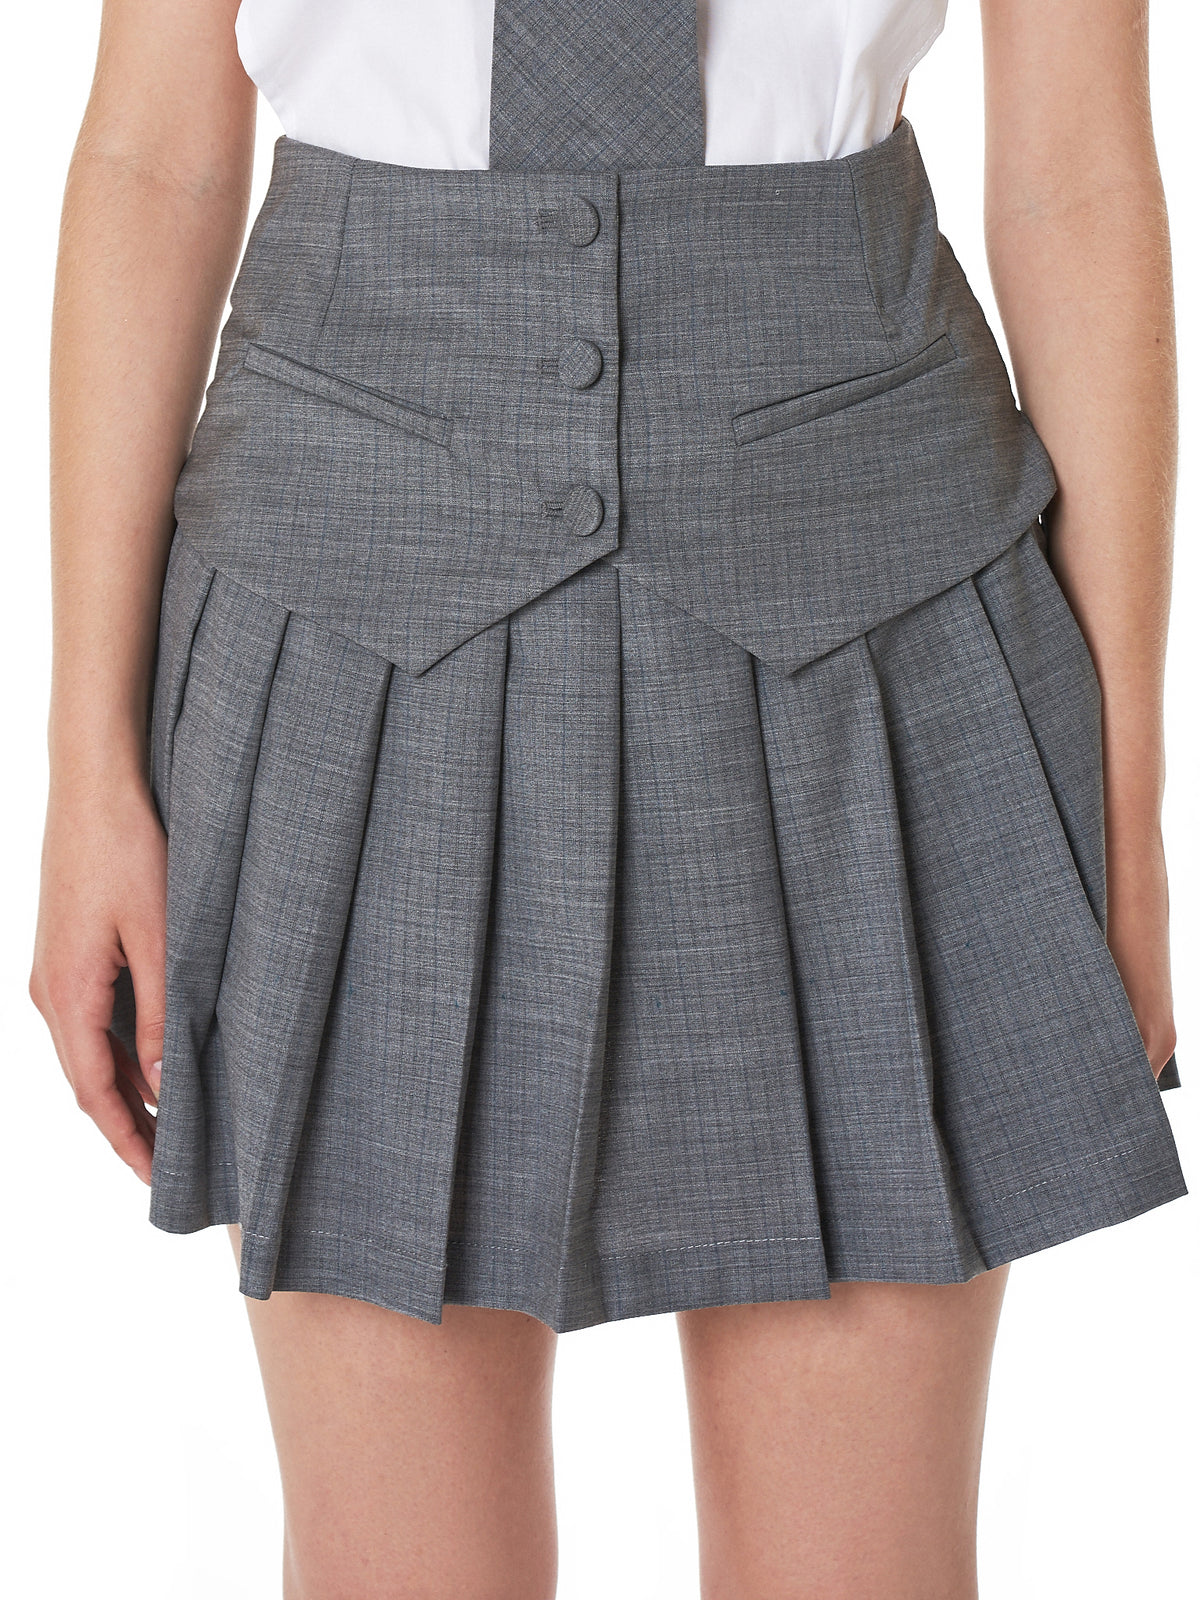 Cut-Off Vest Skirt (09-SK-01-GRAY)